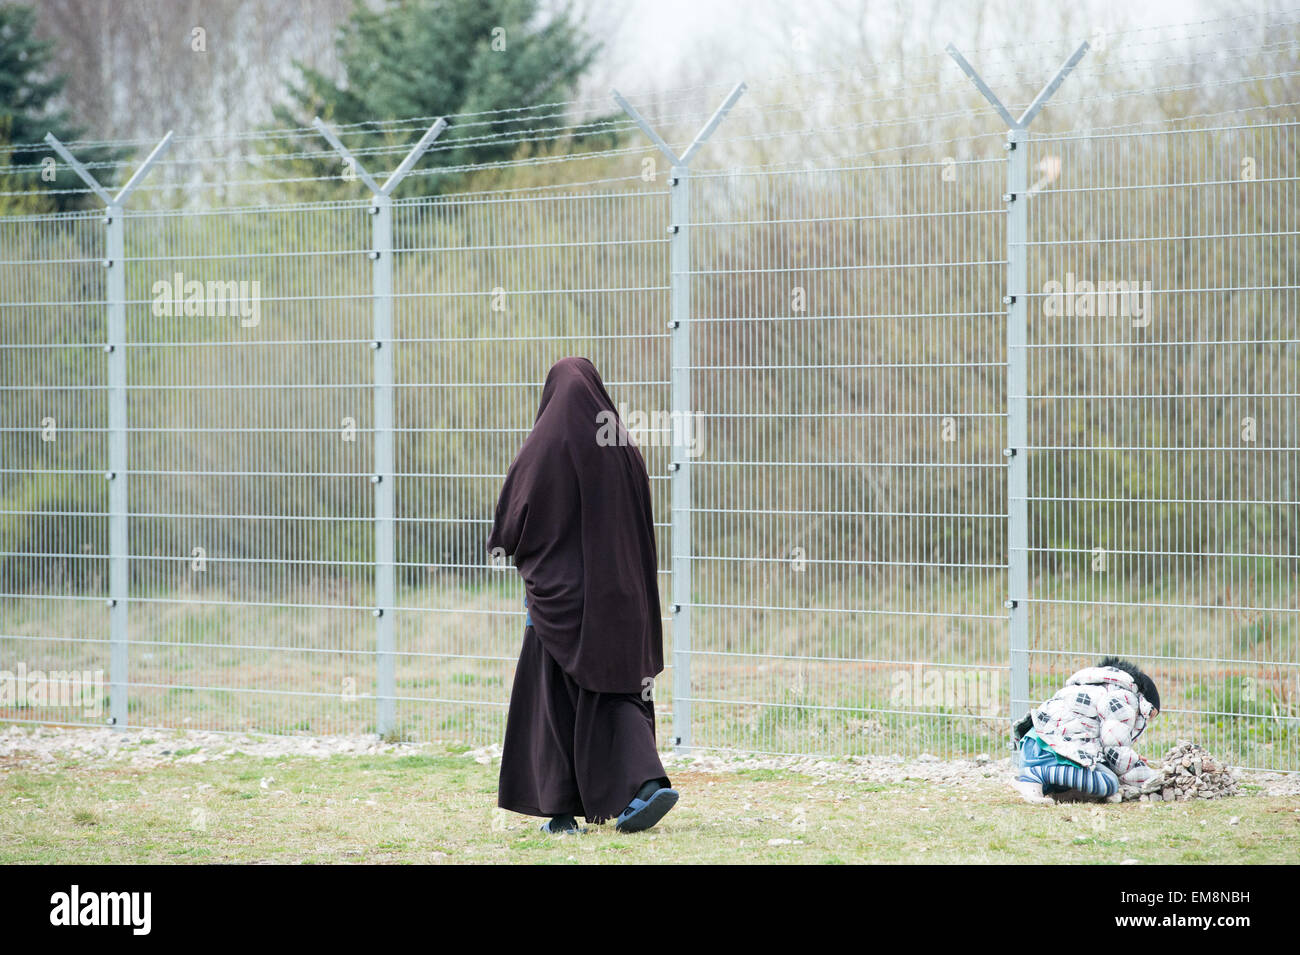 Schneeberg, Germany. 17th Apr, 2015. A Chechen woman stands next to her daughter on the compound of the reception - Stock Image